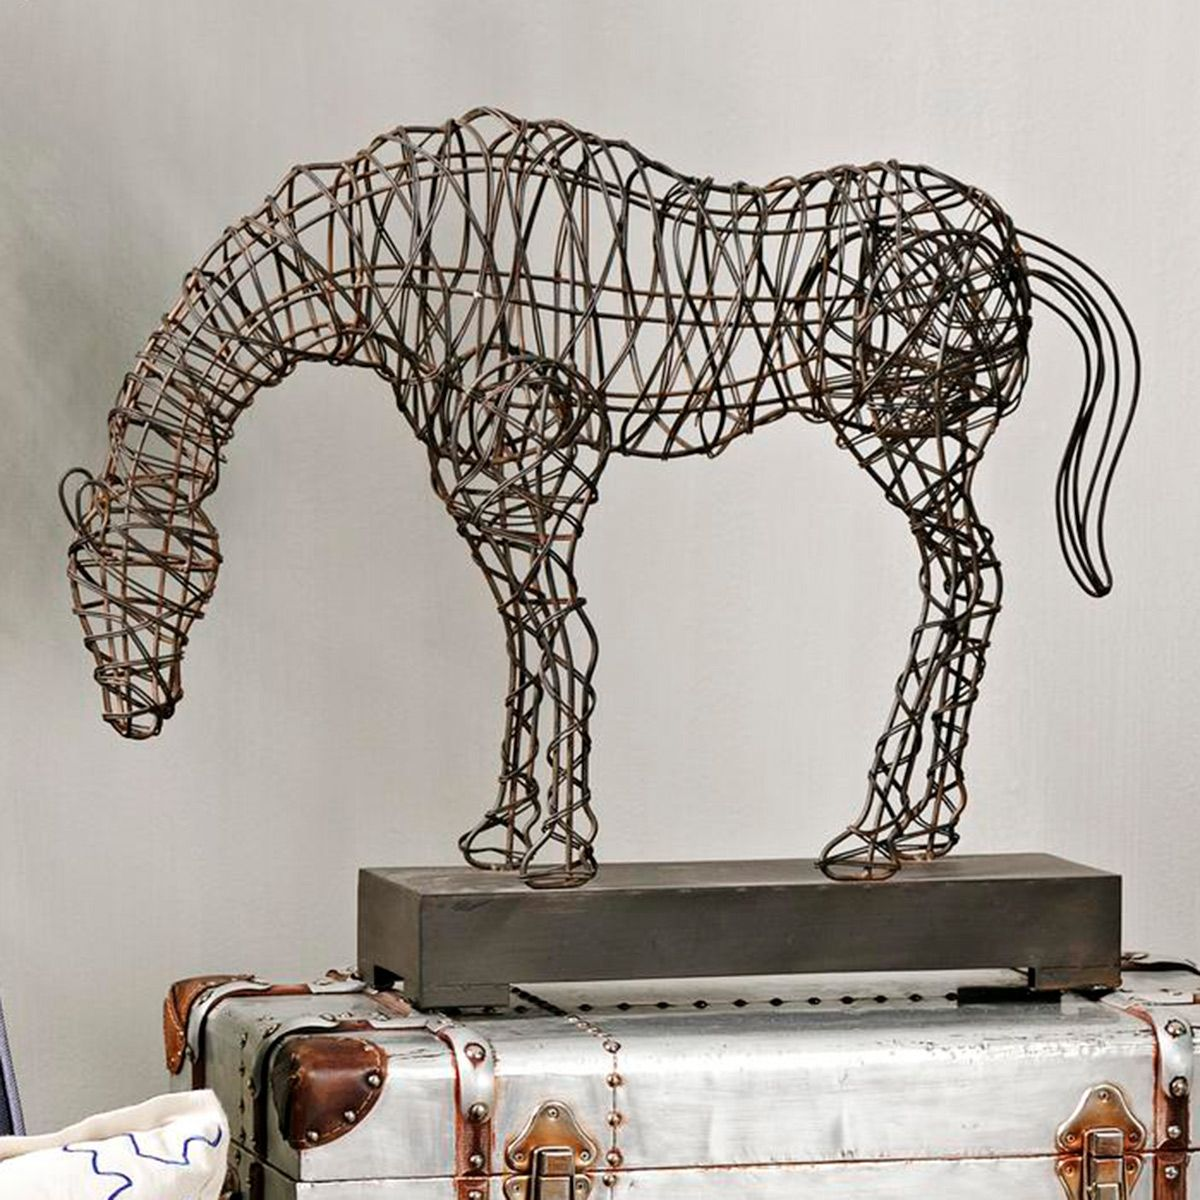 Woven Horse Statuary - OUT OF STOCK UNTIL 7/1/2021